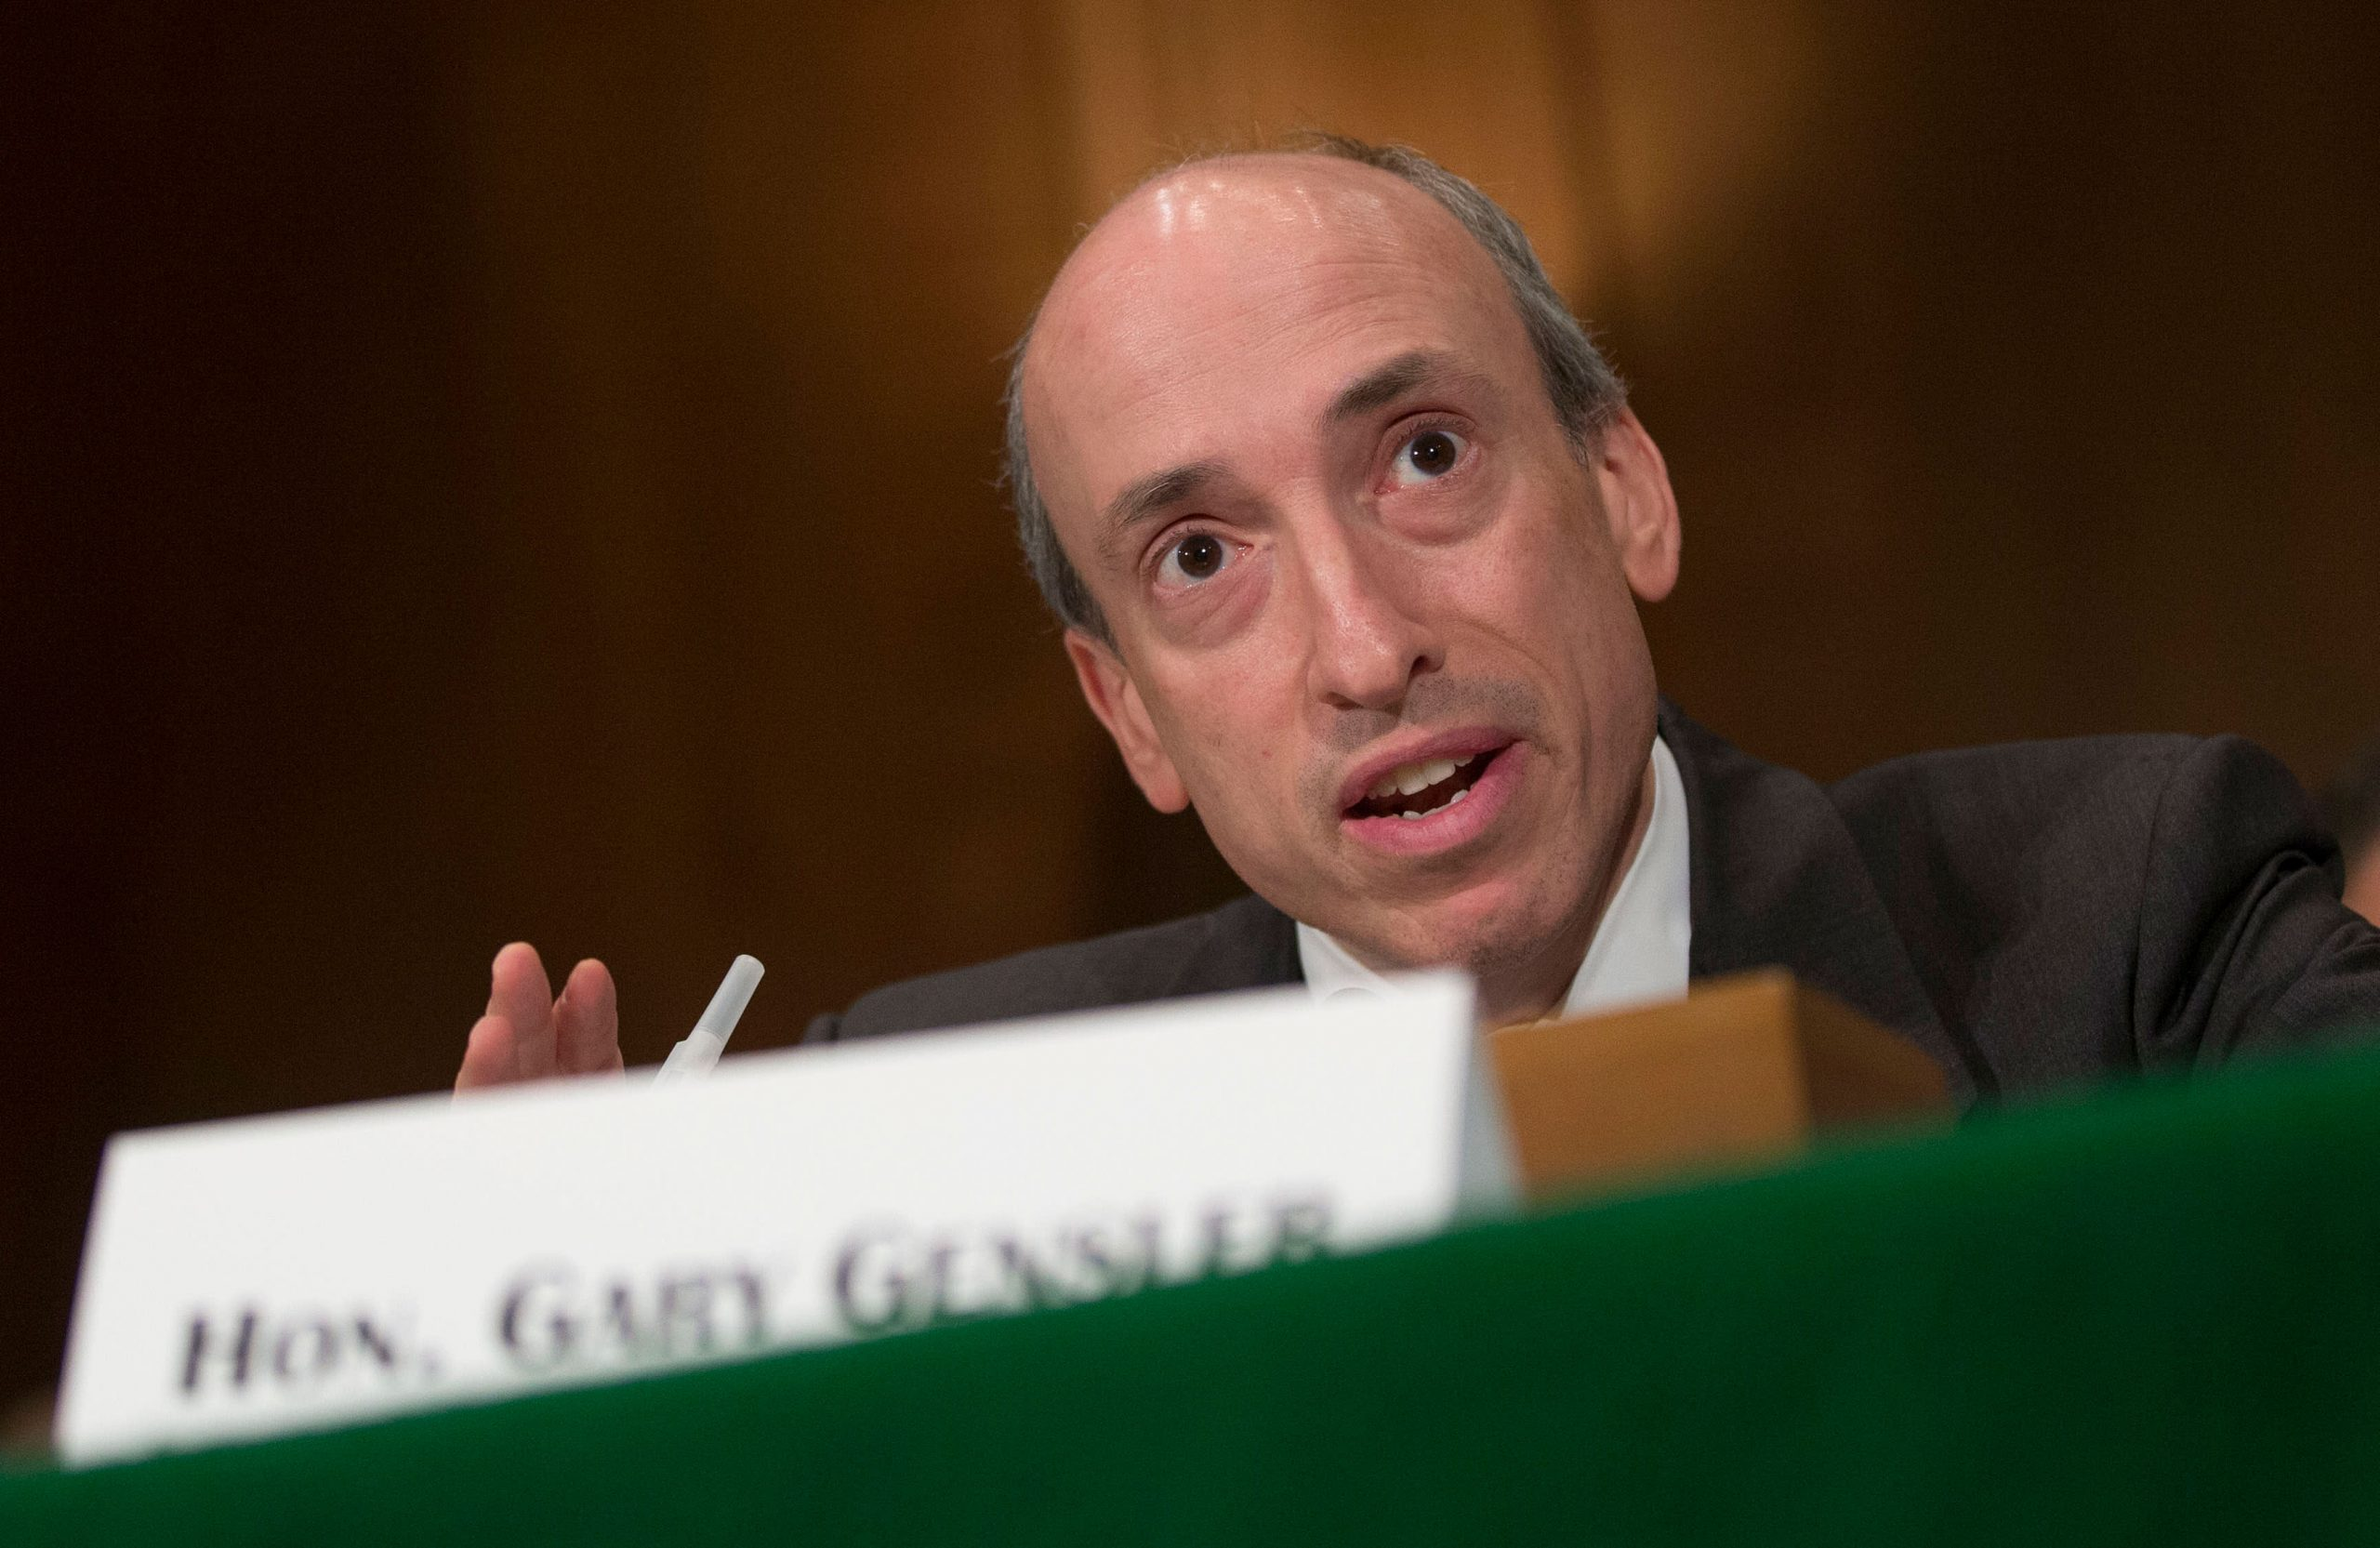 SEC chair Gensler says agency will enforce rules 'aggressively' against bad actors